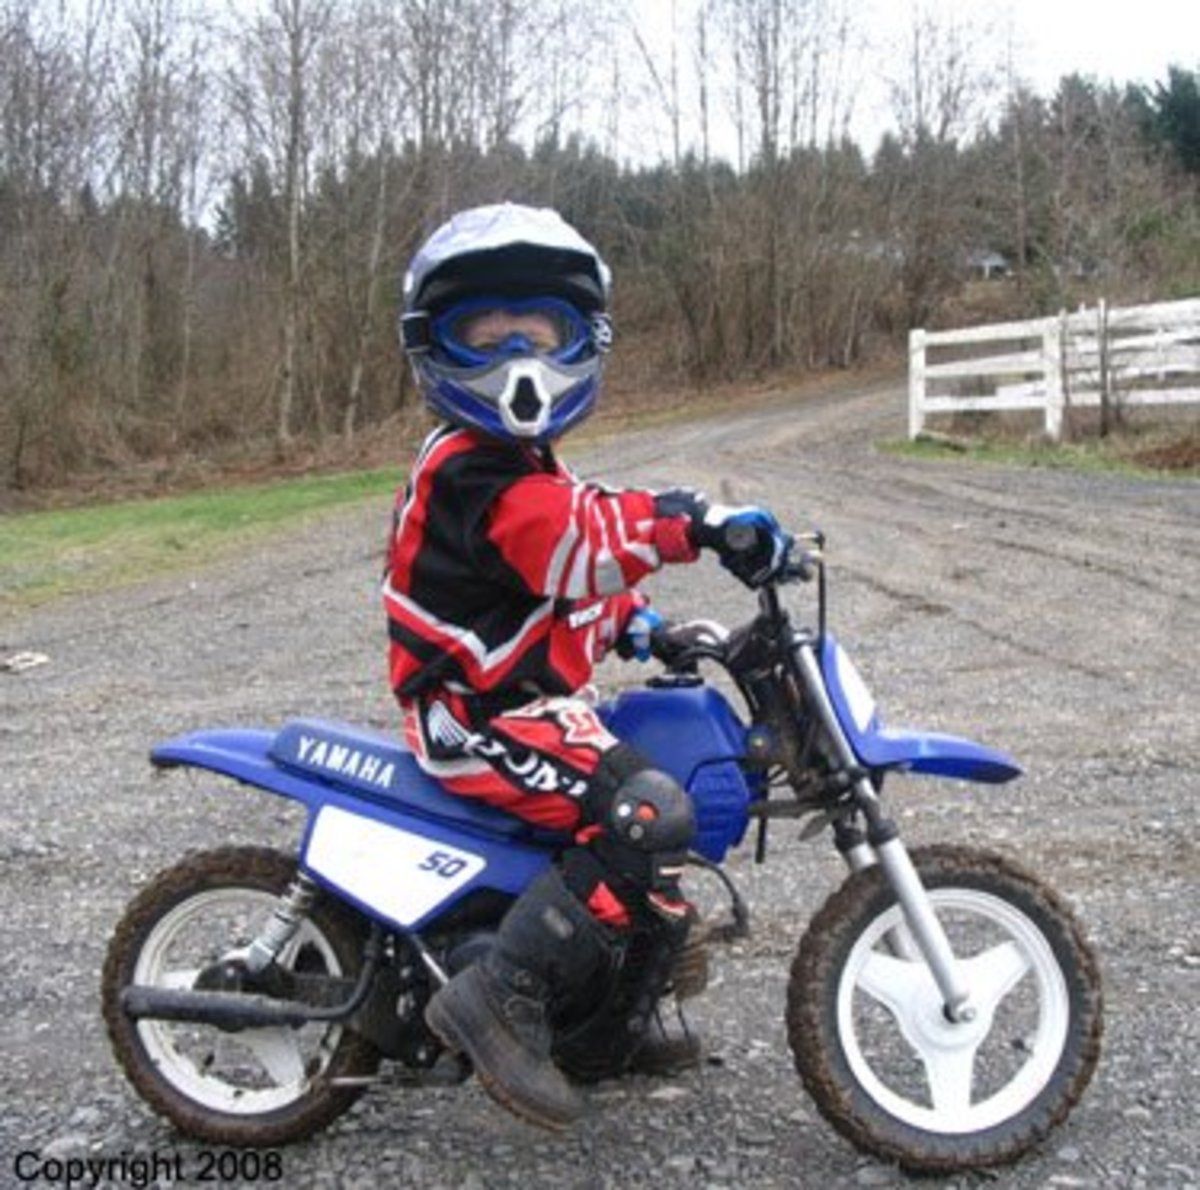 How to Get Your Kid Started Racing Dirt Bikes